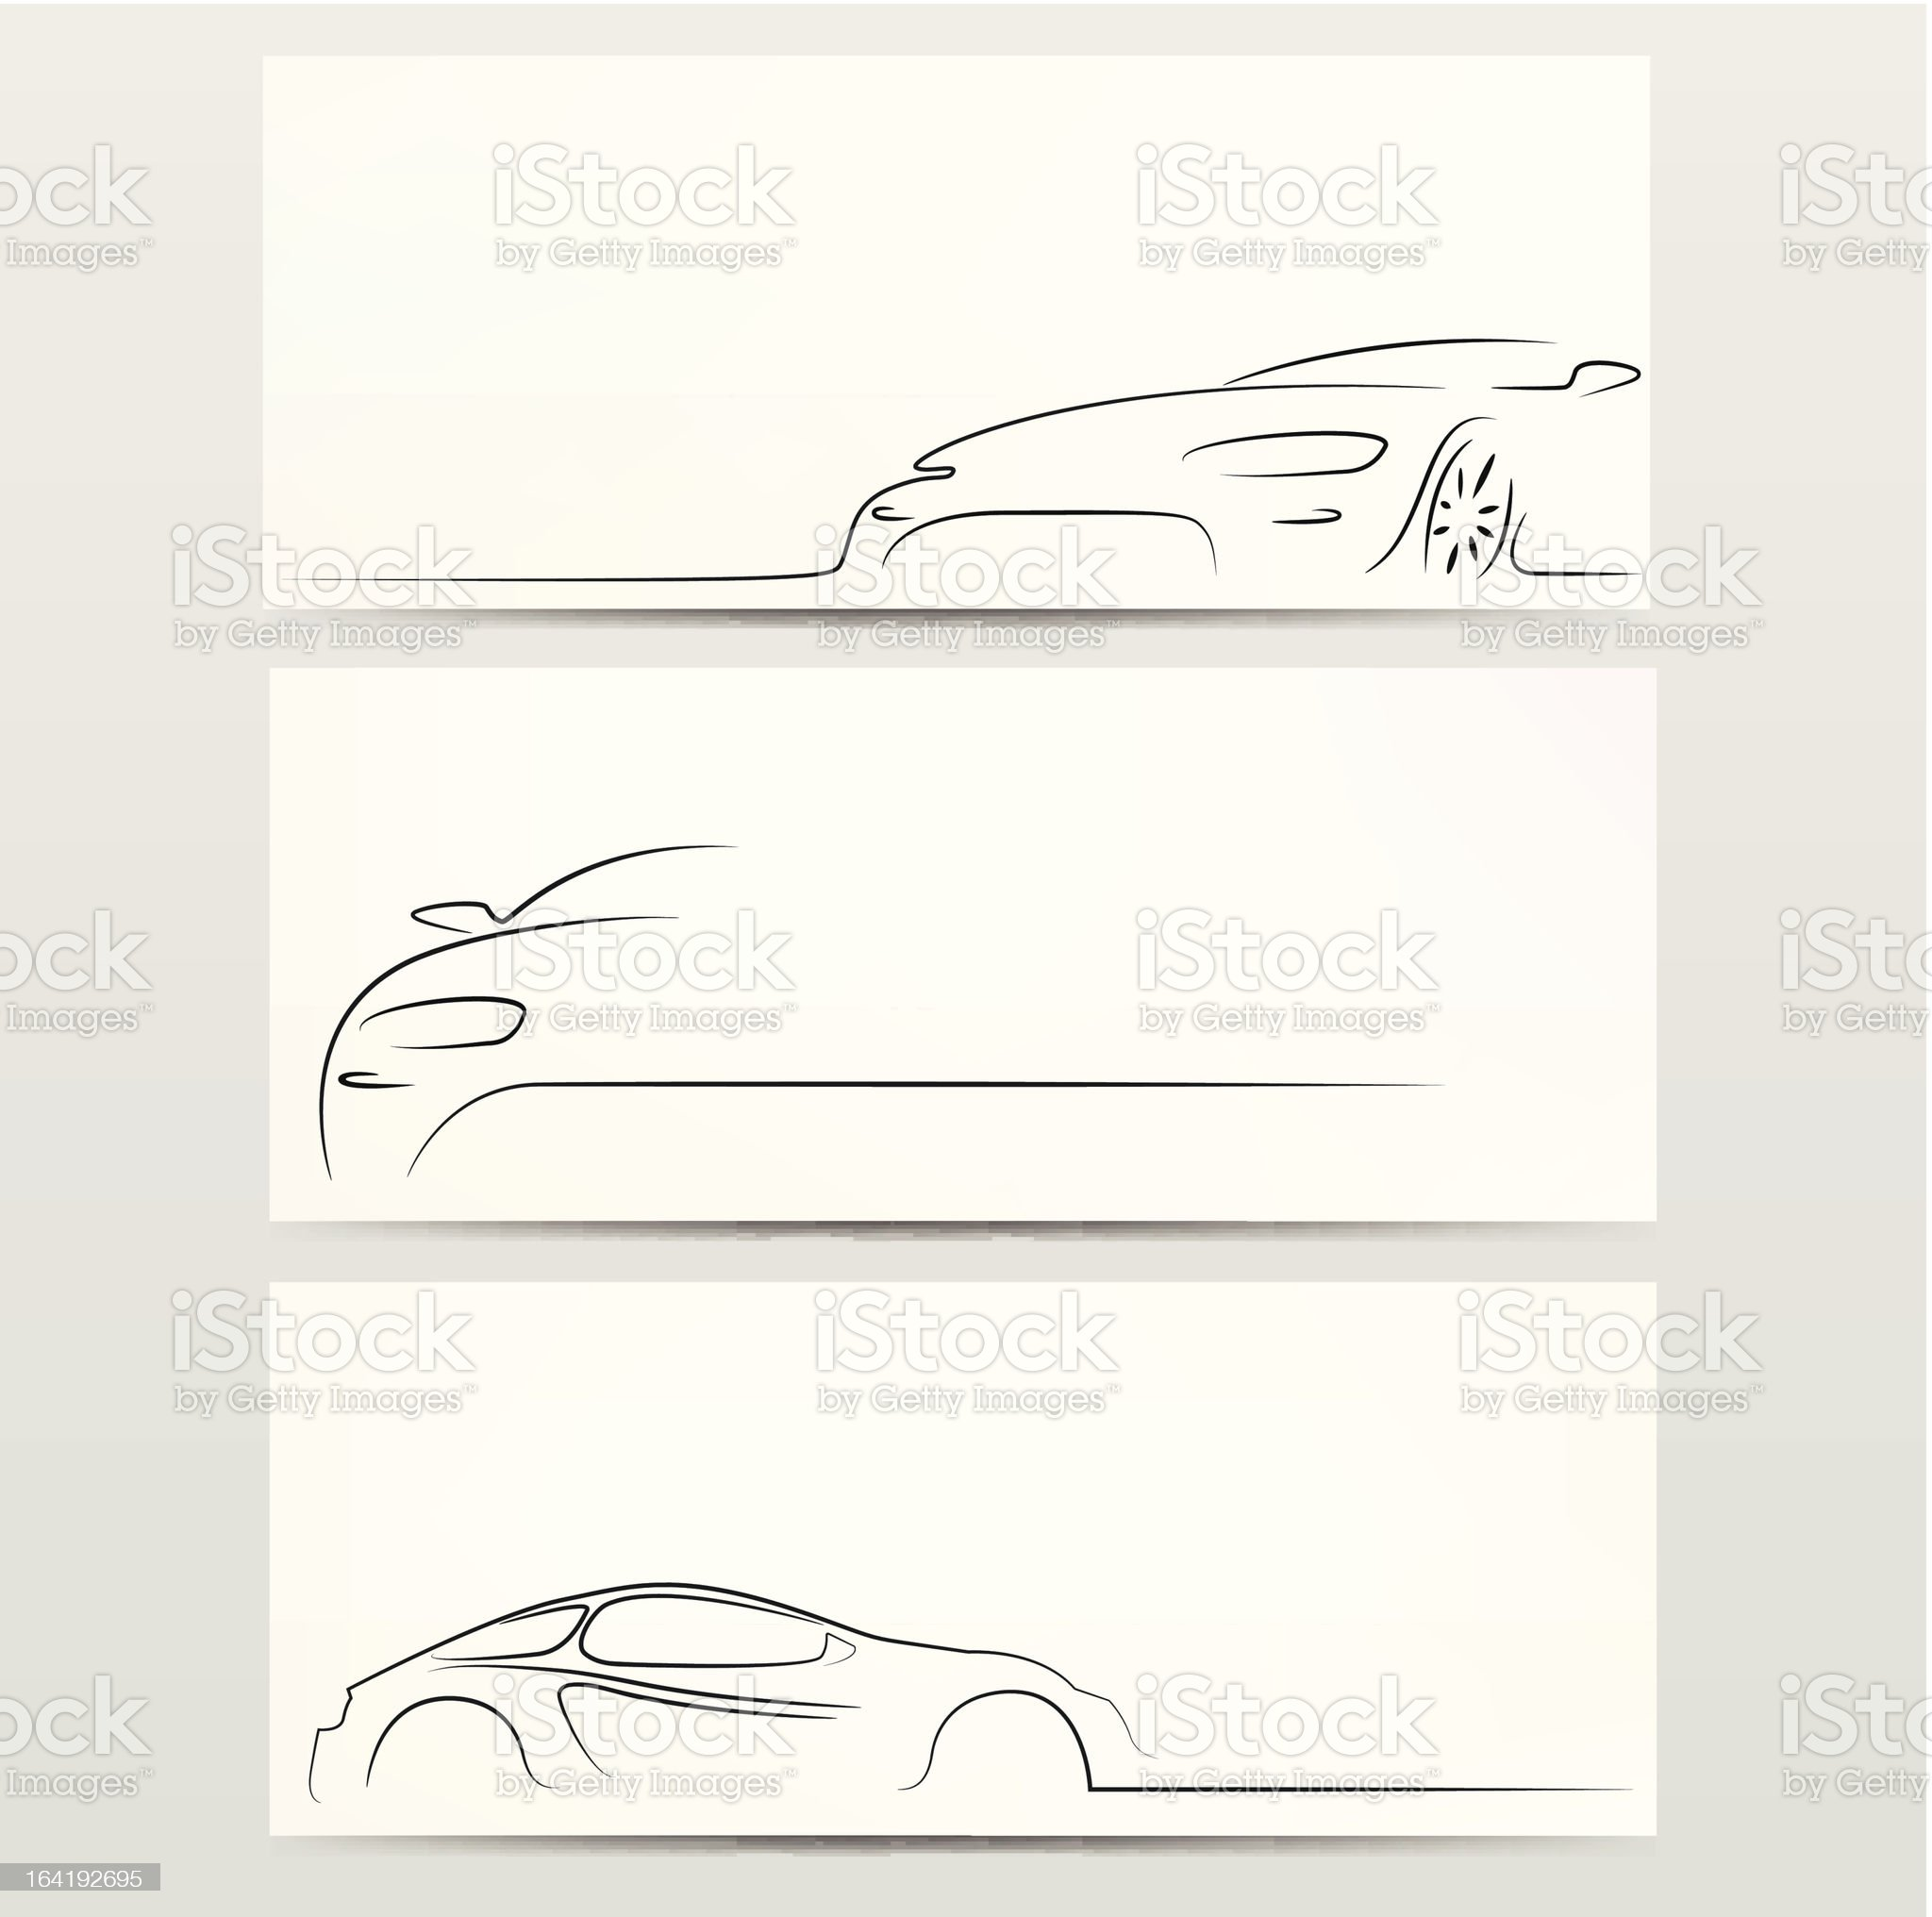 Three car silhouette backgrounds. royalty-free stock vector art